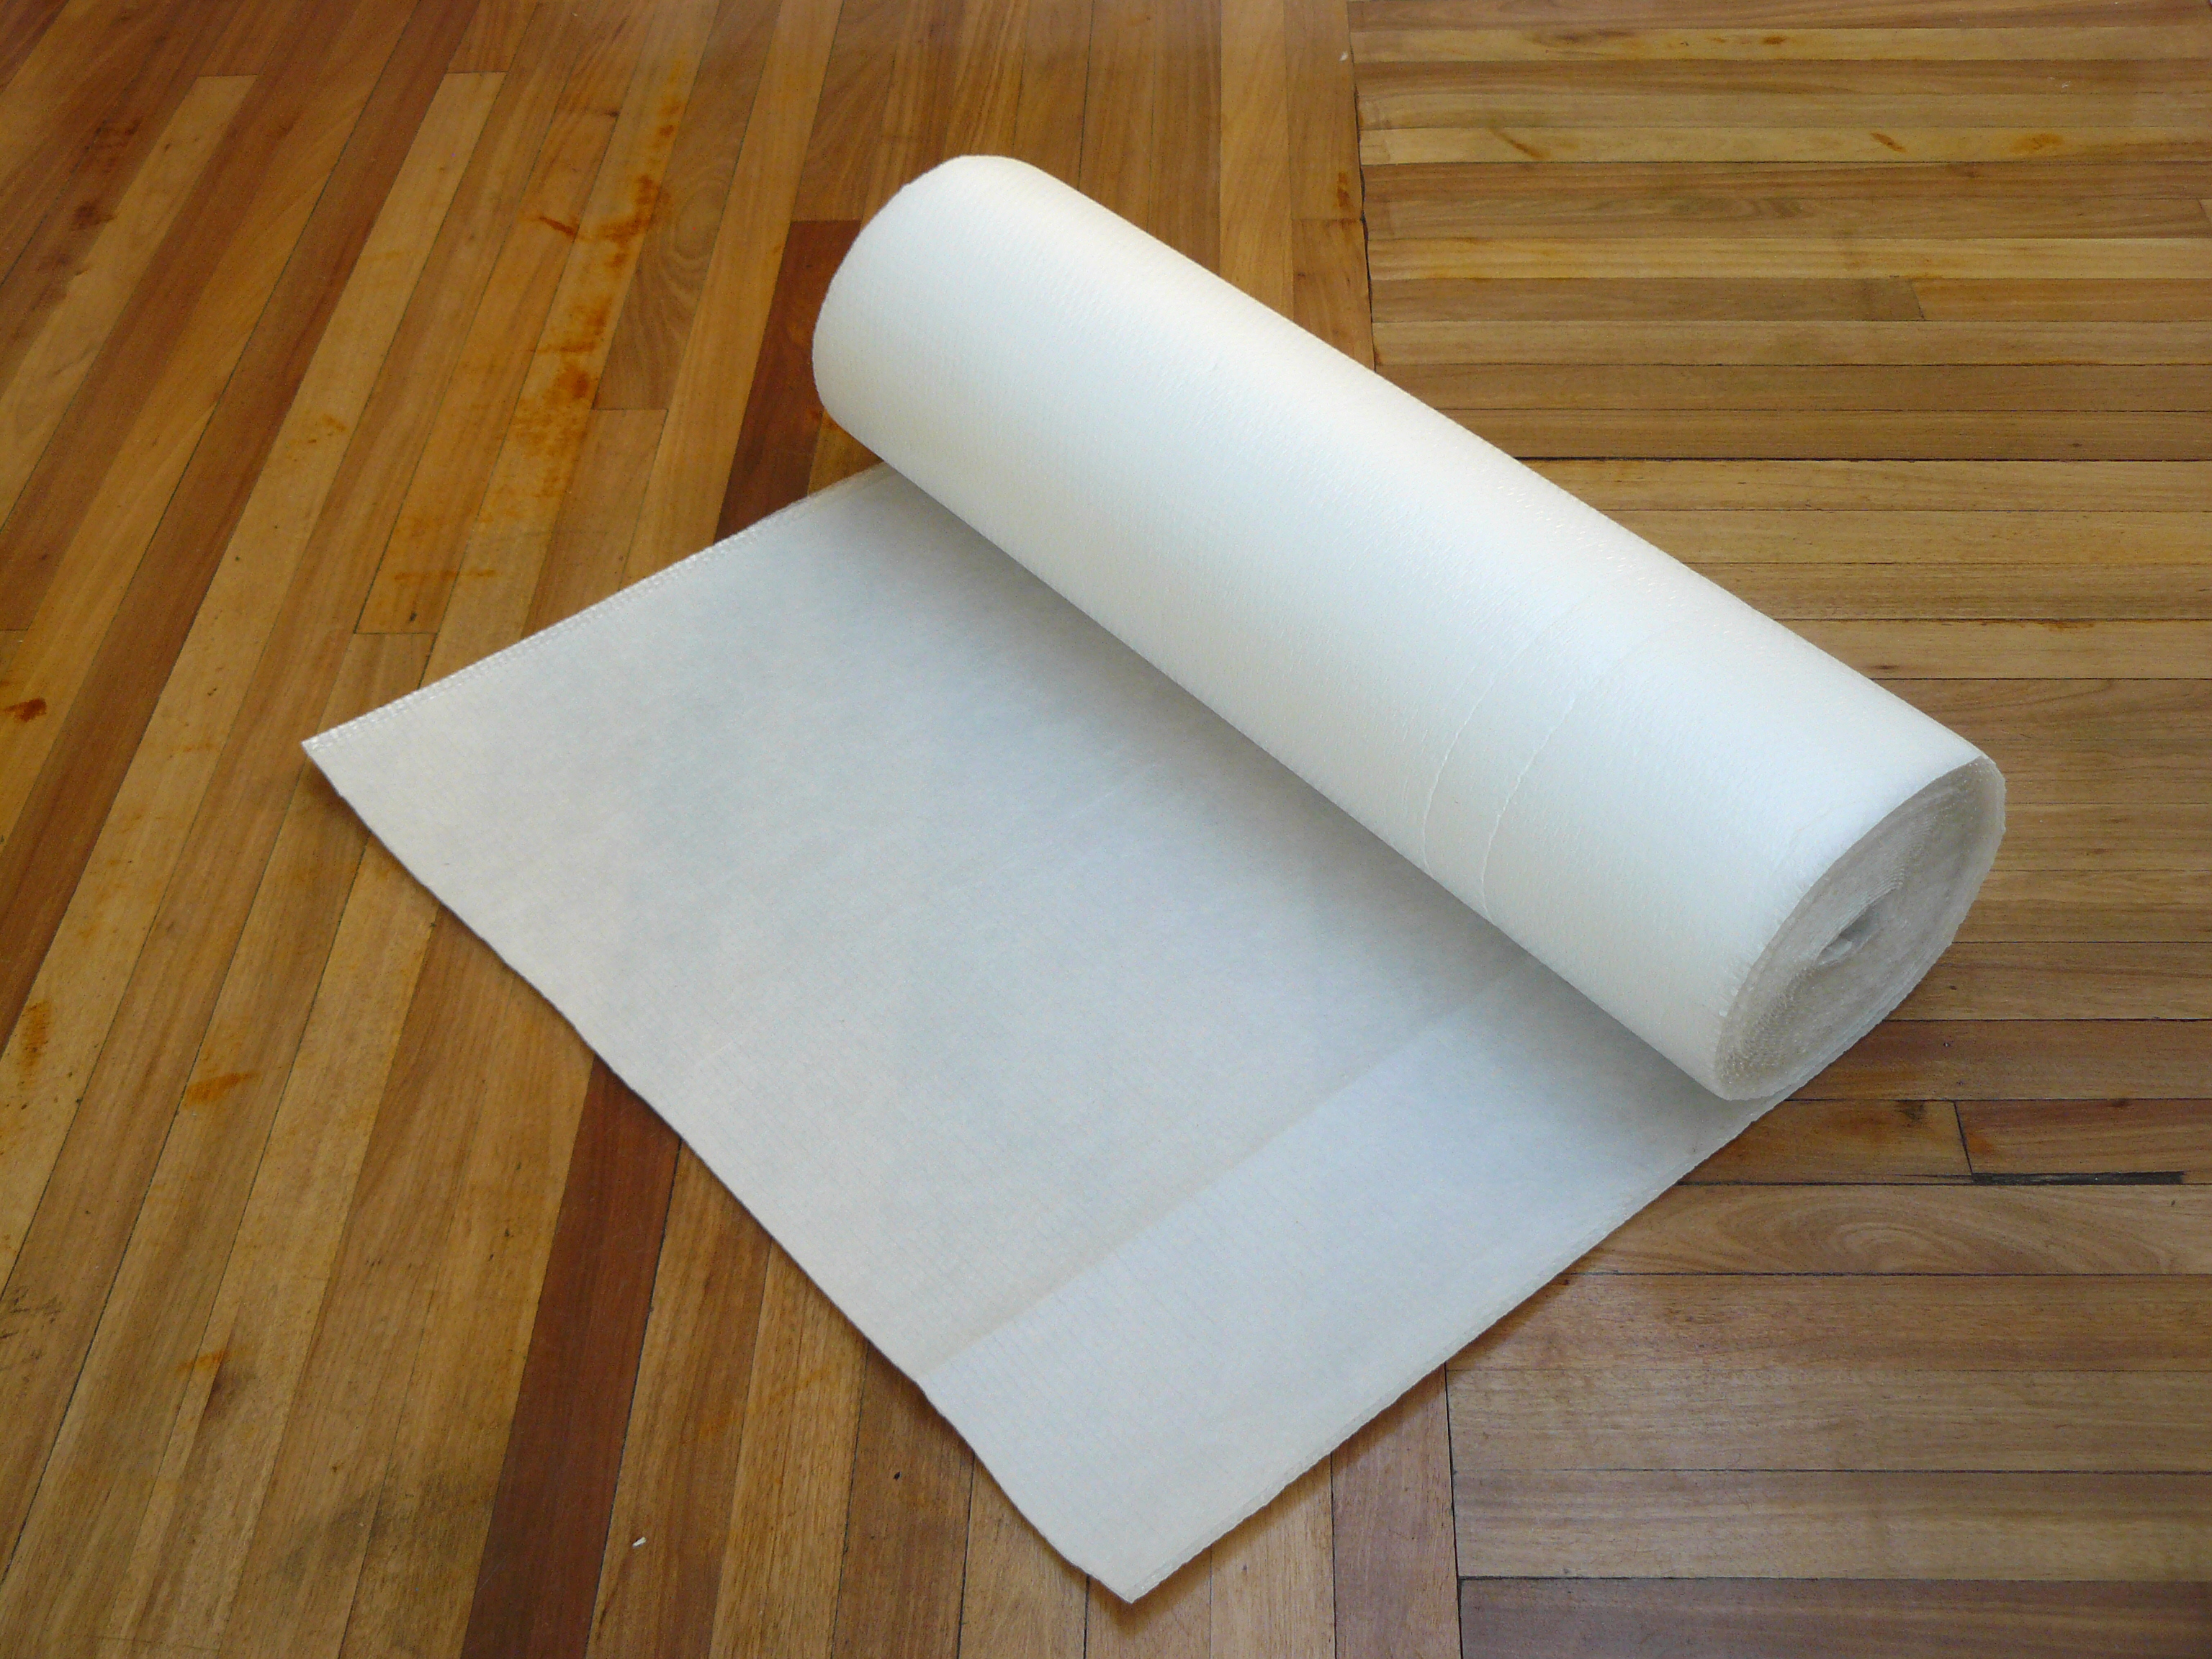 Bubble Blanket, This Is Extremely High Quality, Tough Plastic Wrapping With  A Foam Lining. It Is Used On Fragile Furniture When Moving, Storing And On  ...